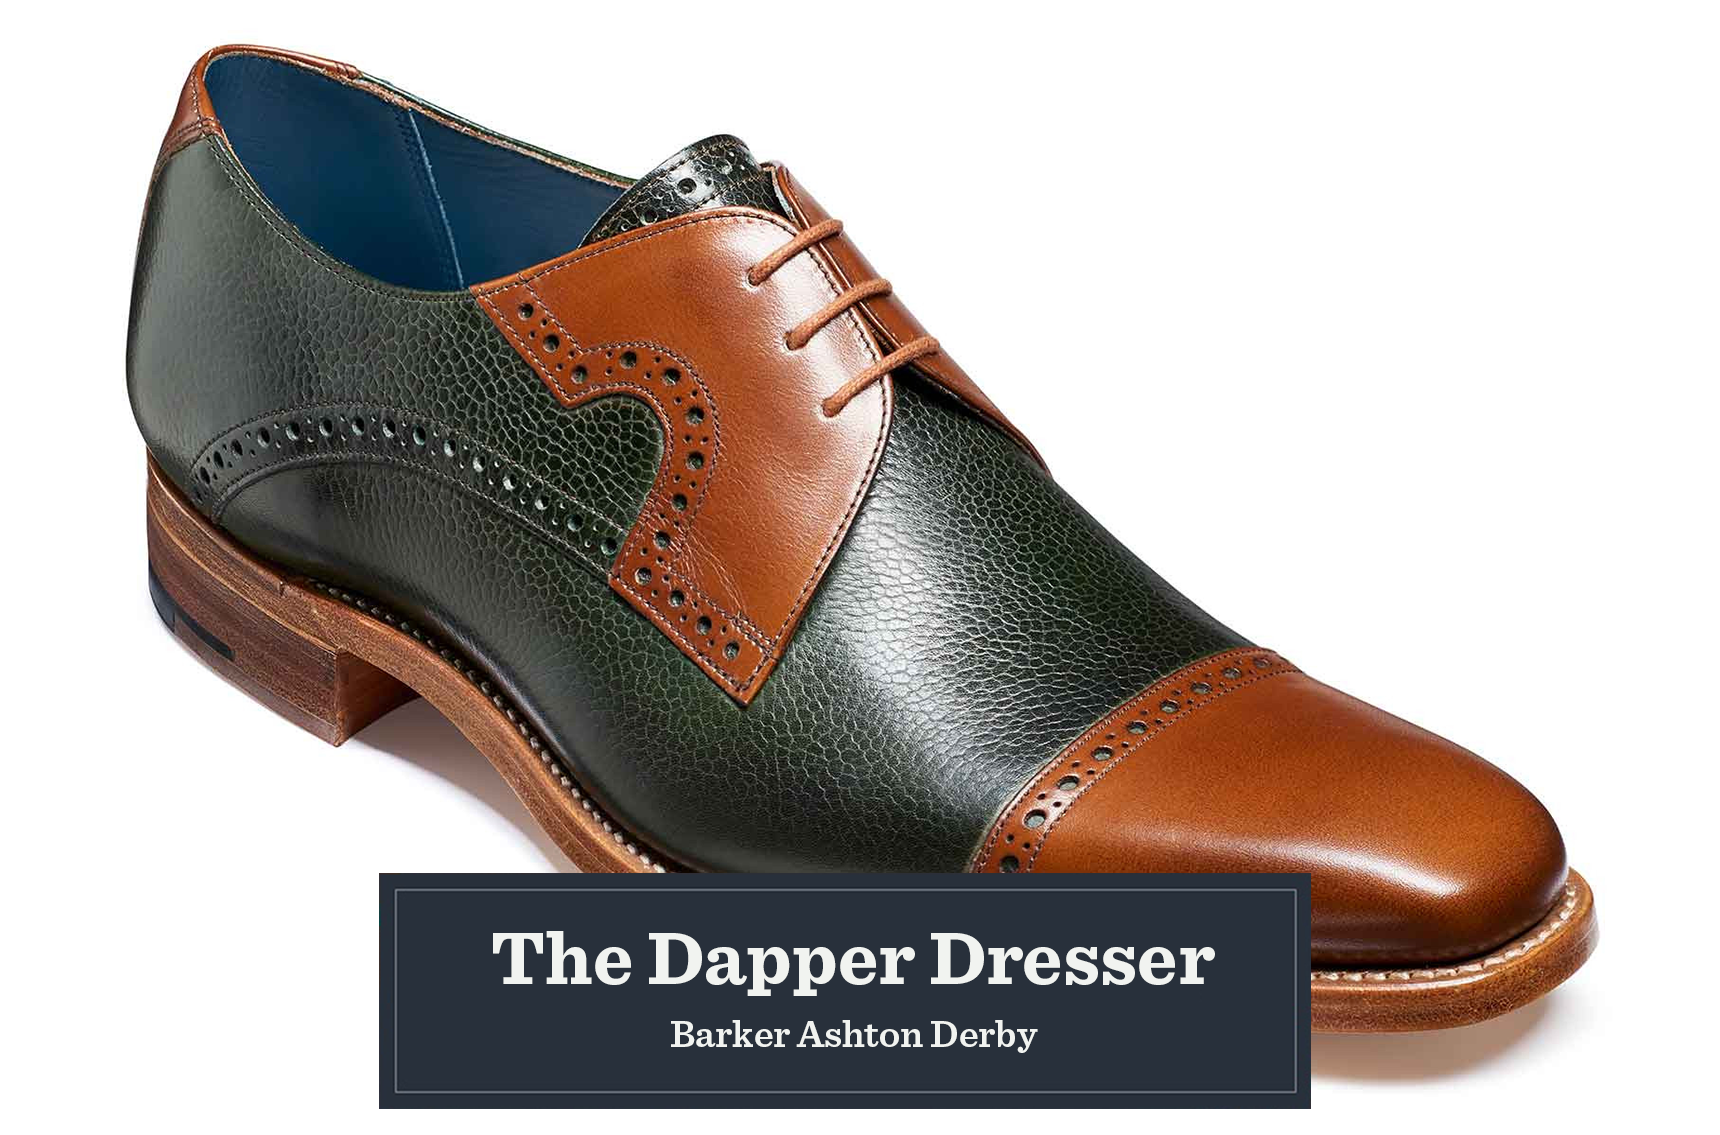 2abd2f84 These stylish shoes combine luxurious calf and grain leathers into one  design, embellished with subtle punched detailing to add ...